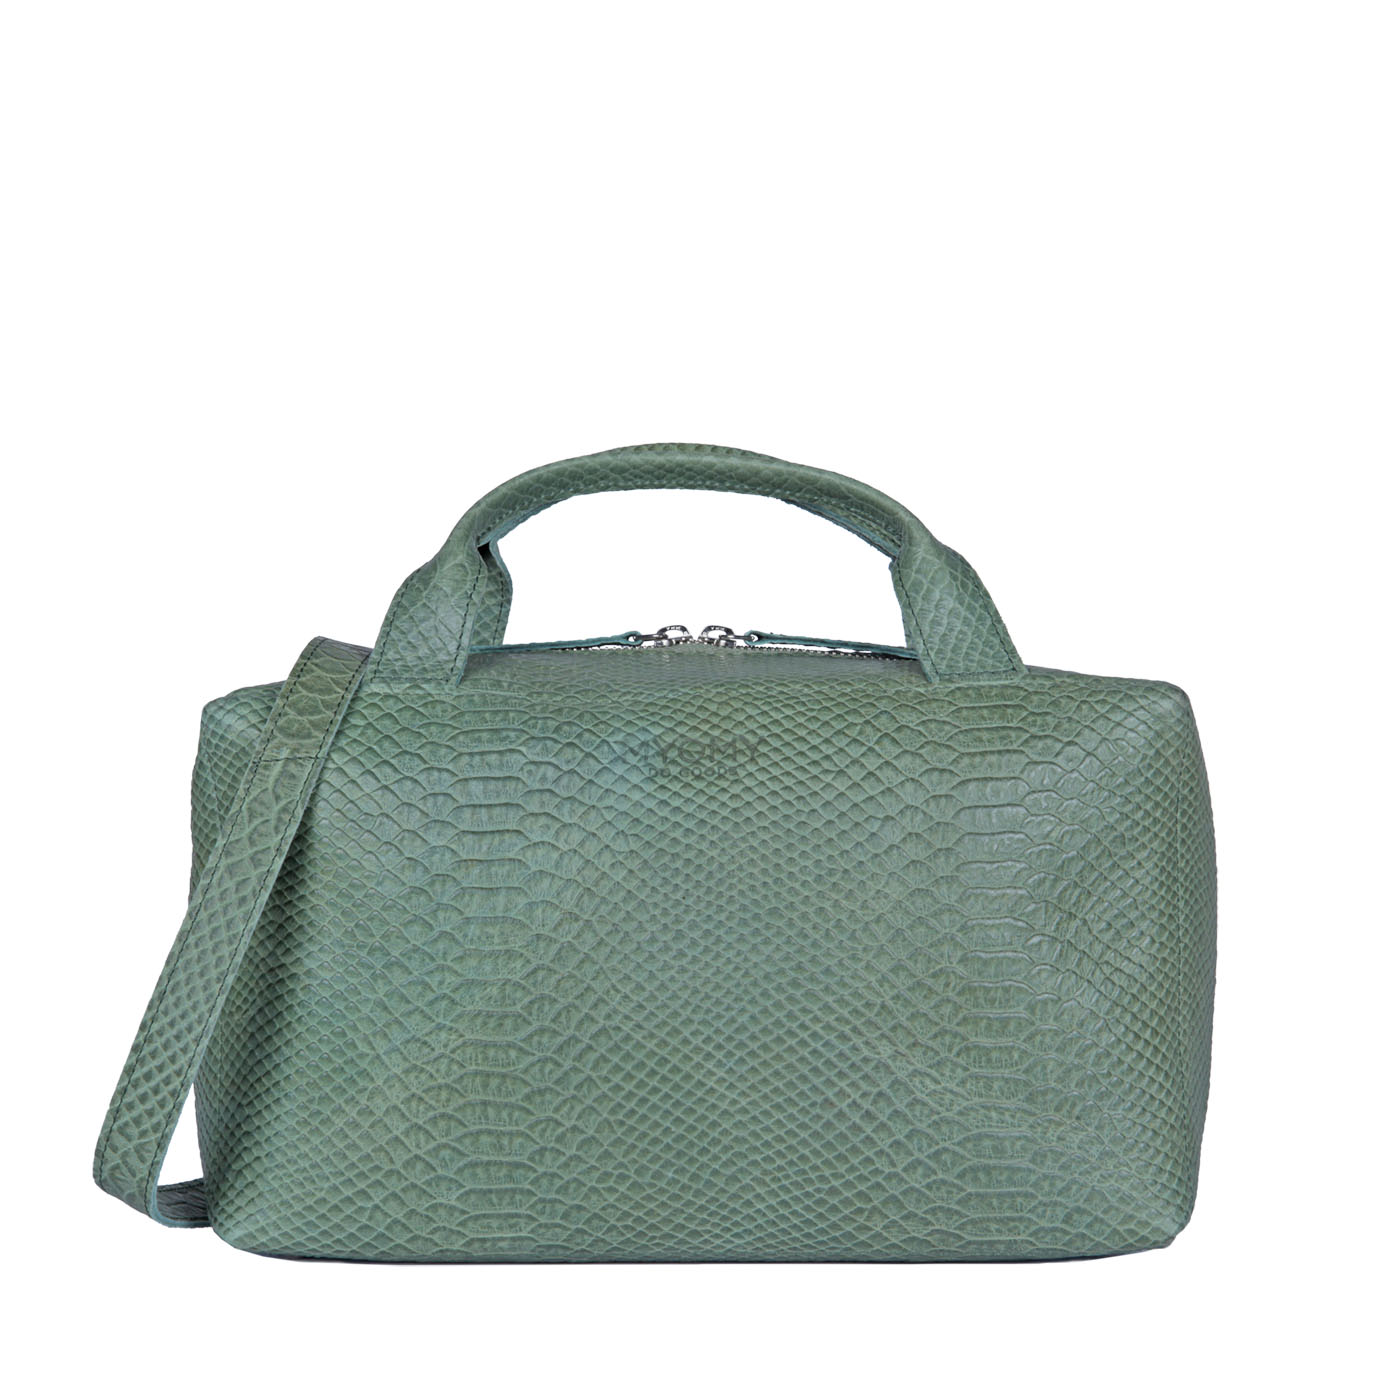 MY BOXY BAG Workbag - anaconda sea green